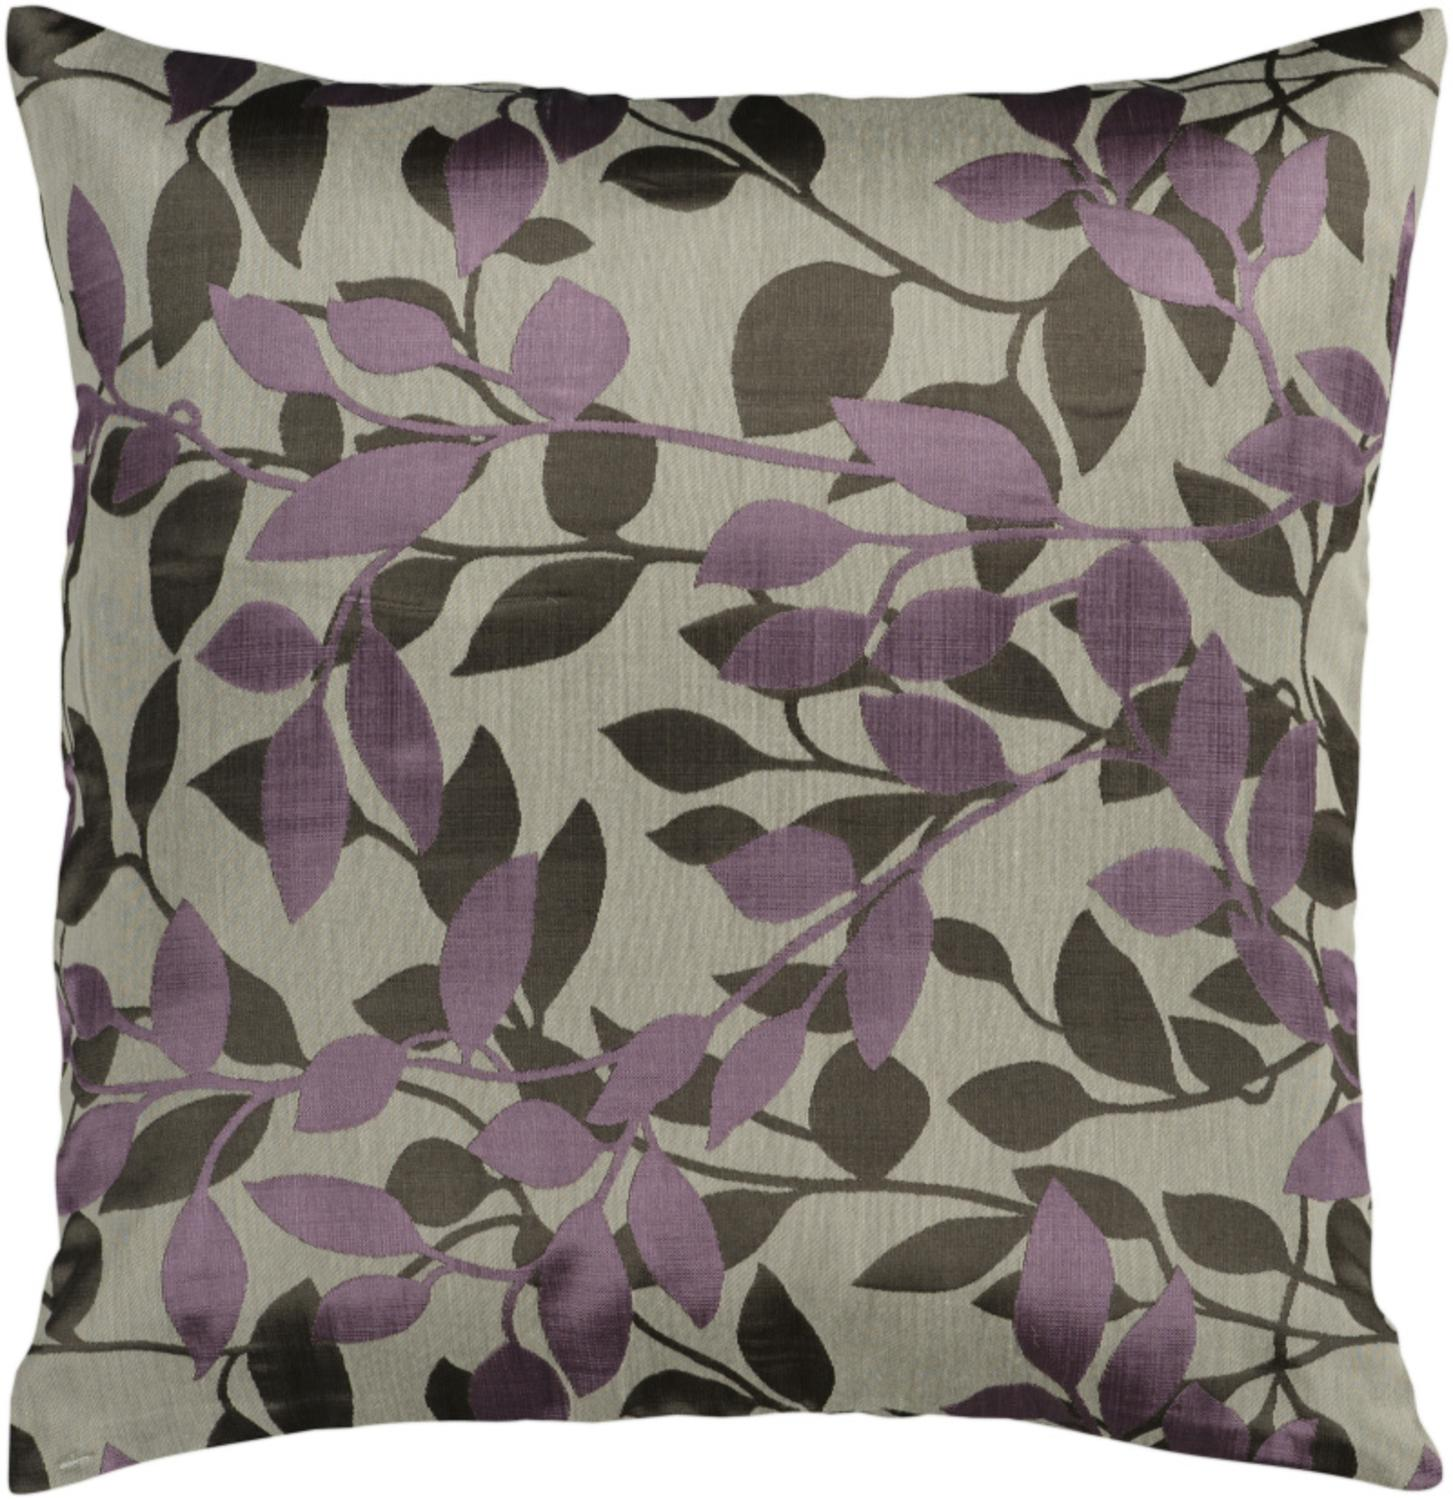 """22"""" Oyster Gray and Grape Early Morning Foliage Decorative Down Throw Pillow"""